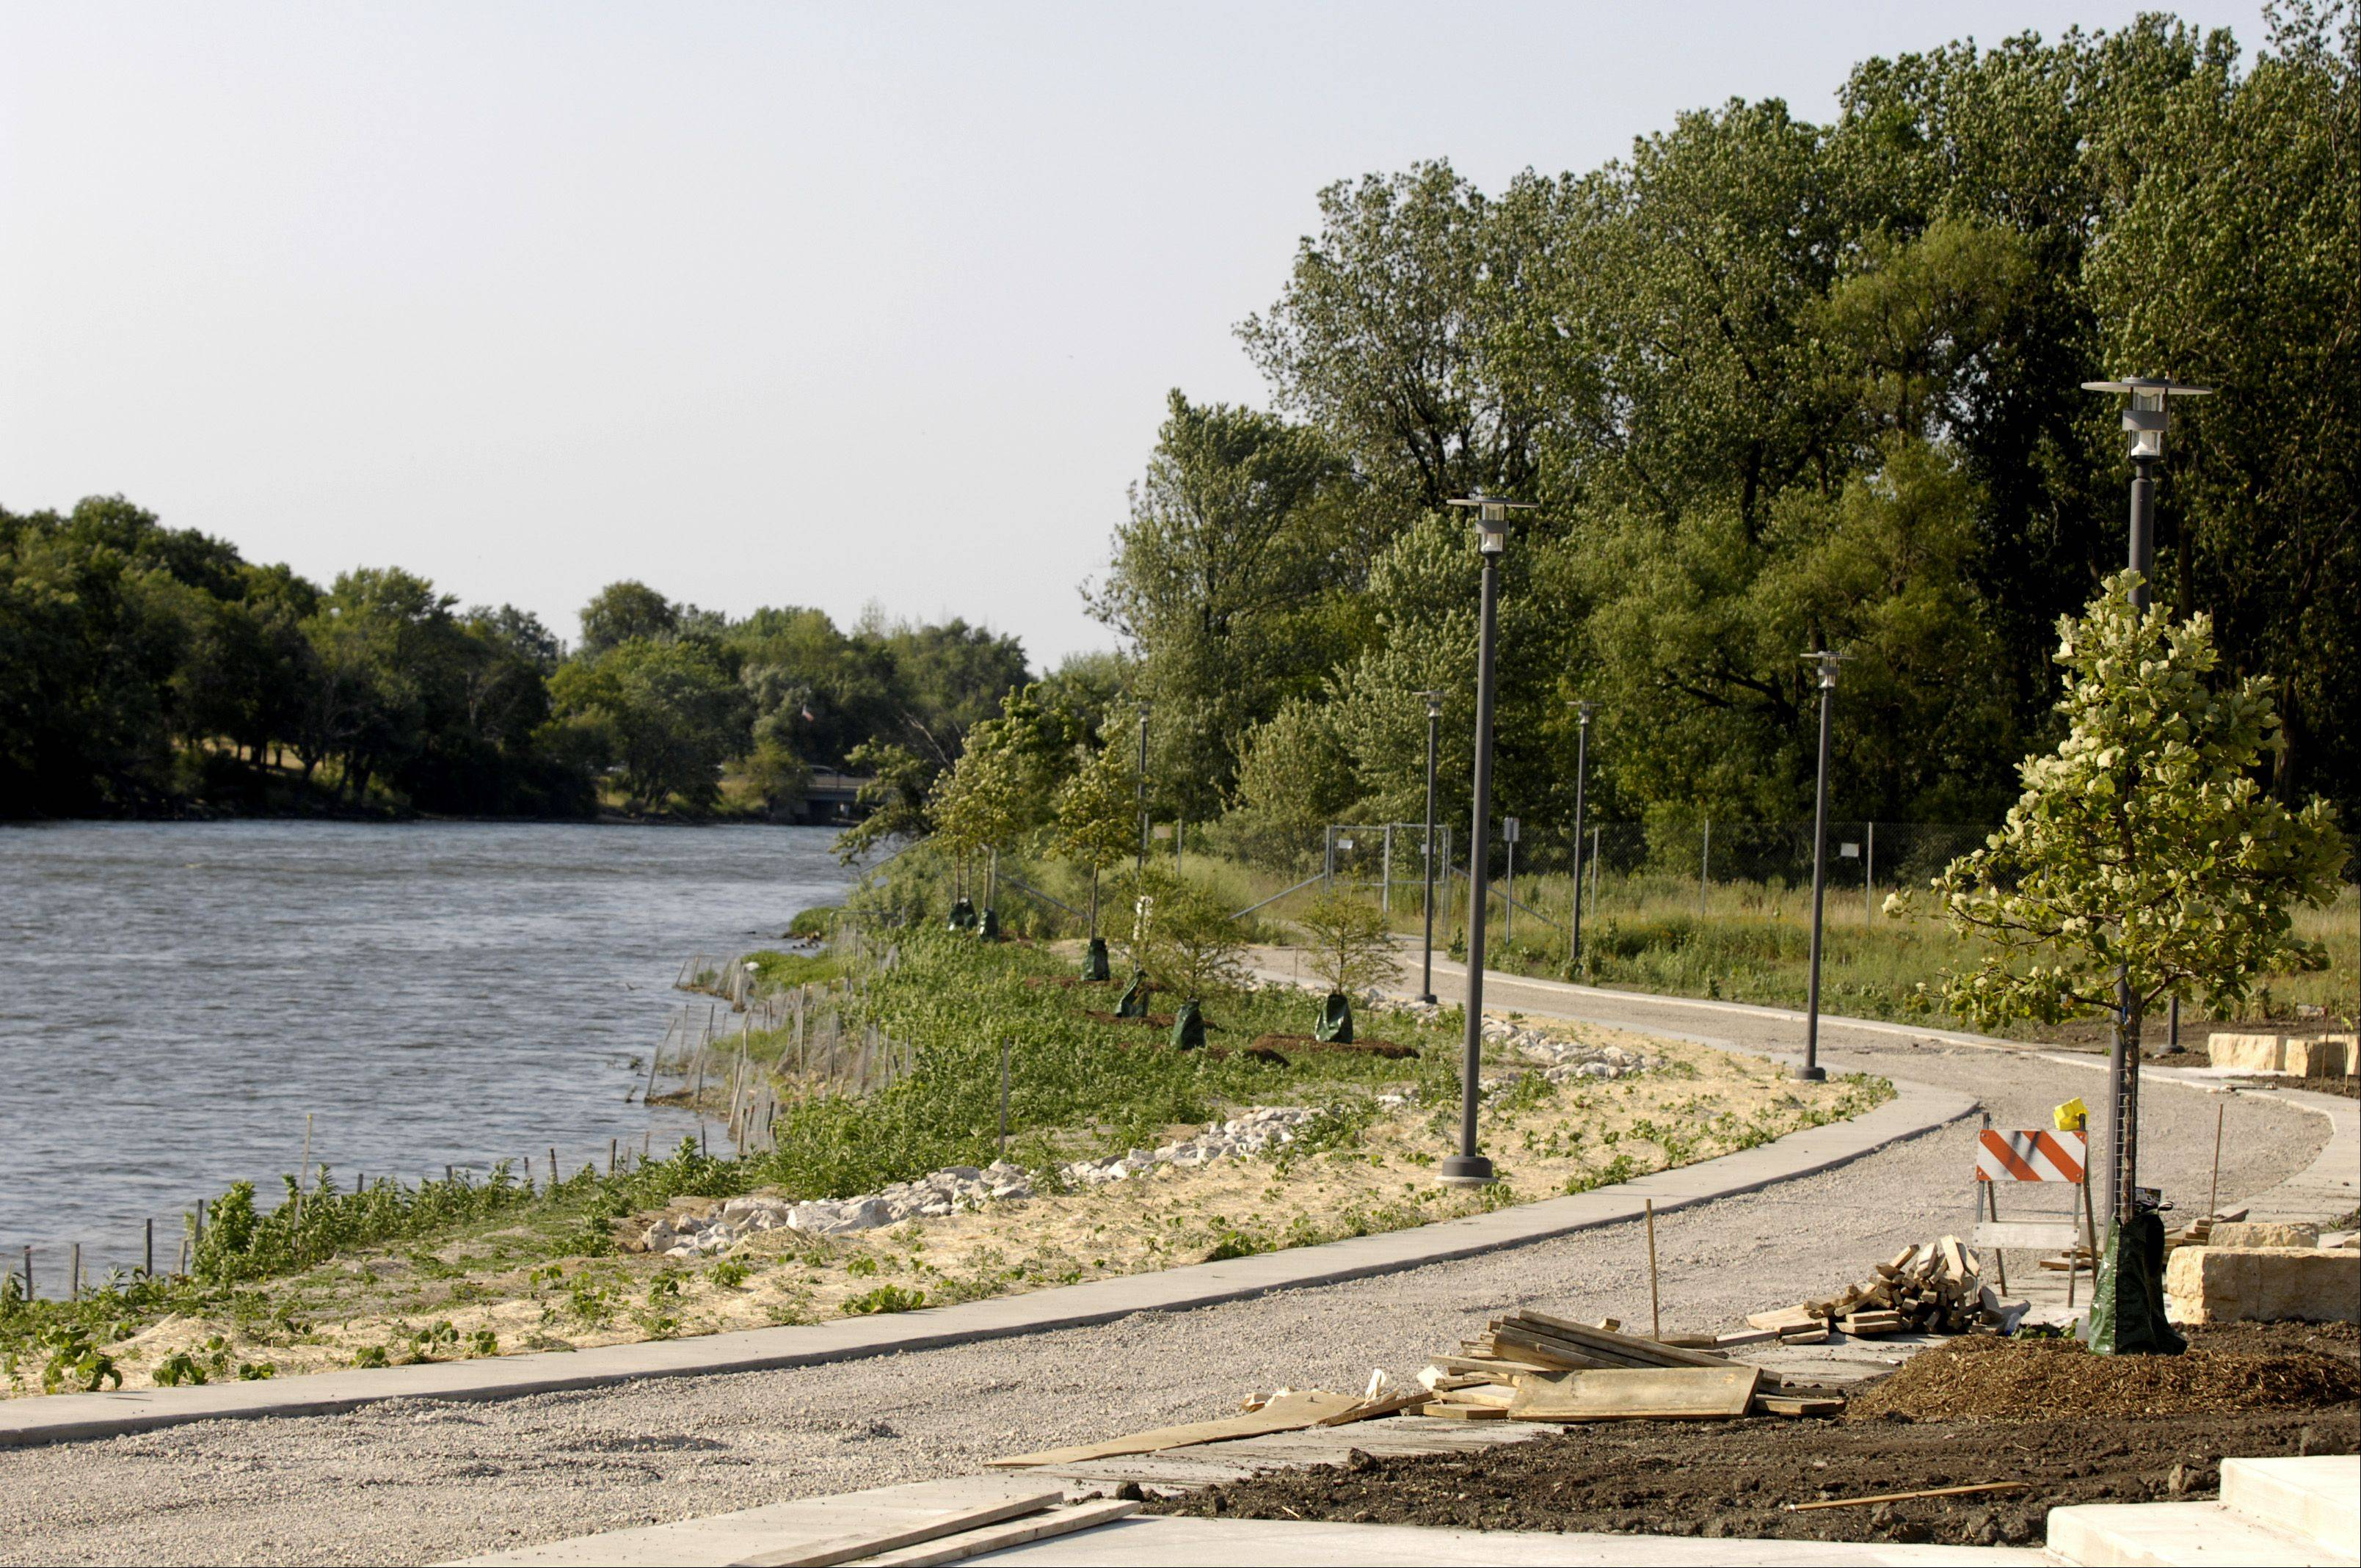 Planting native prairie and aquatic vegetation along the Fox River, reconstructing the riverfront bike path and building a stage, seating, lawn and concessions area were all part of the construction process that brought the Music Garden at RiverEdge Park in Aurora to life. Seen here in March 2012, the first phase of the park was constructed between July 2011 and October 2012 for $13.2 million.